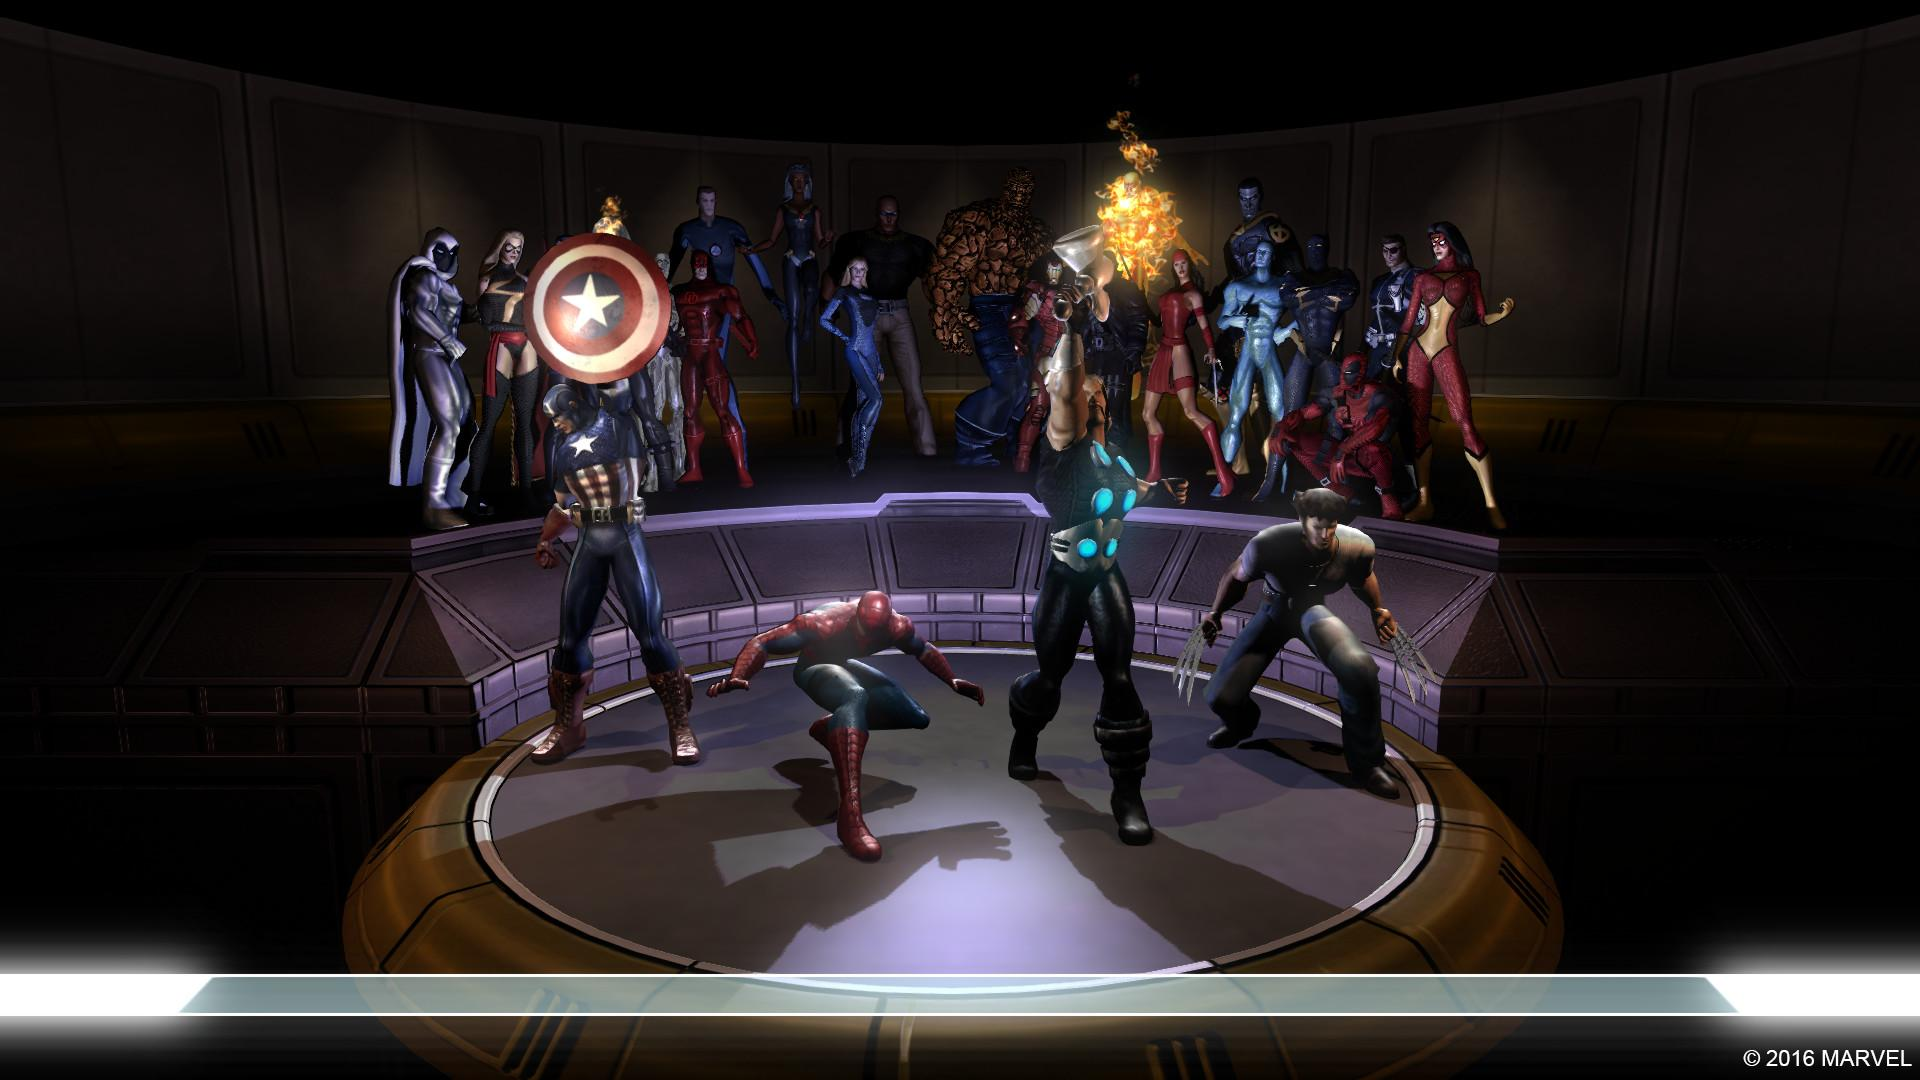 Marvel's The Avengers Project seems to be a Third Person Action Gam